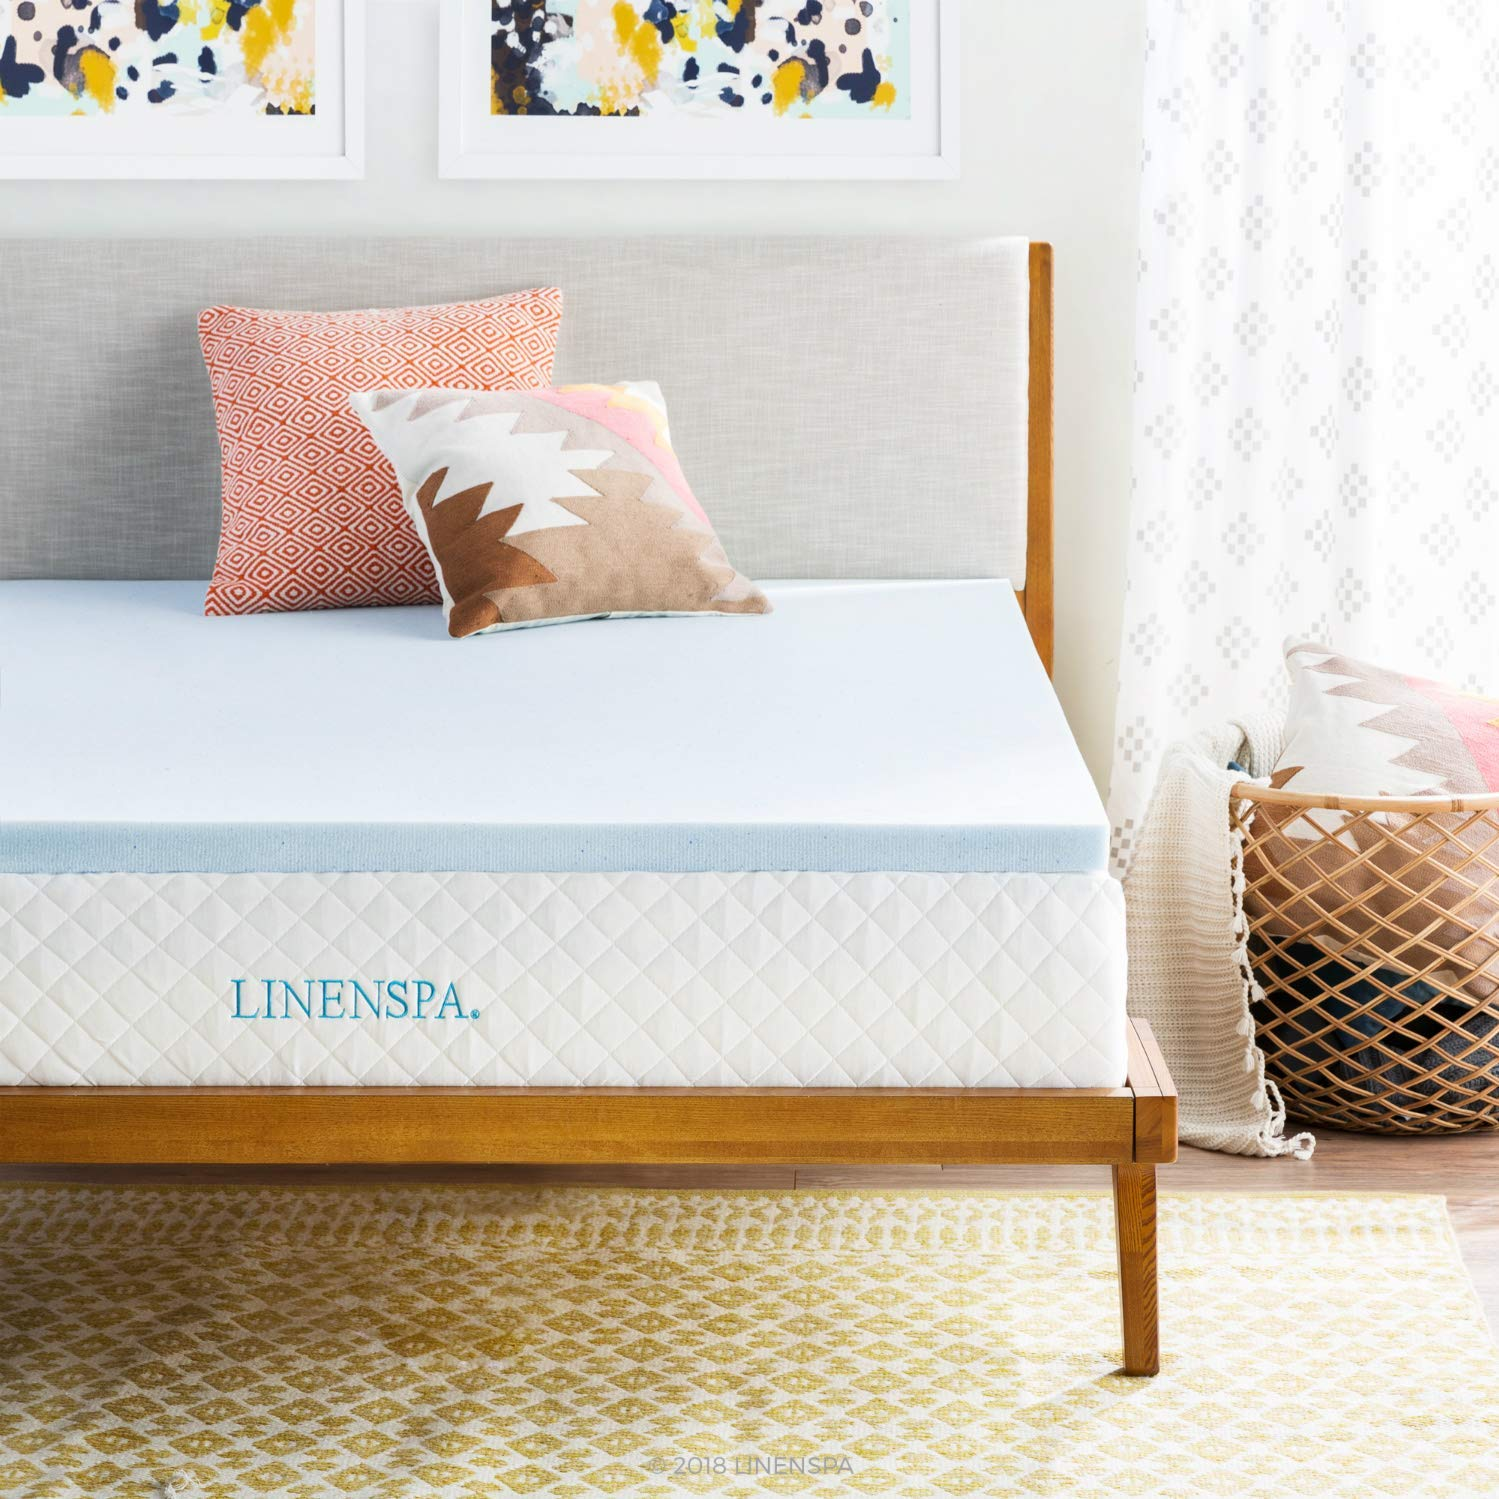 Linenspa Best Memory Foam Mattress Topper Review by www.snoremagazine.com